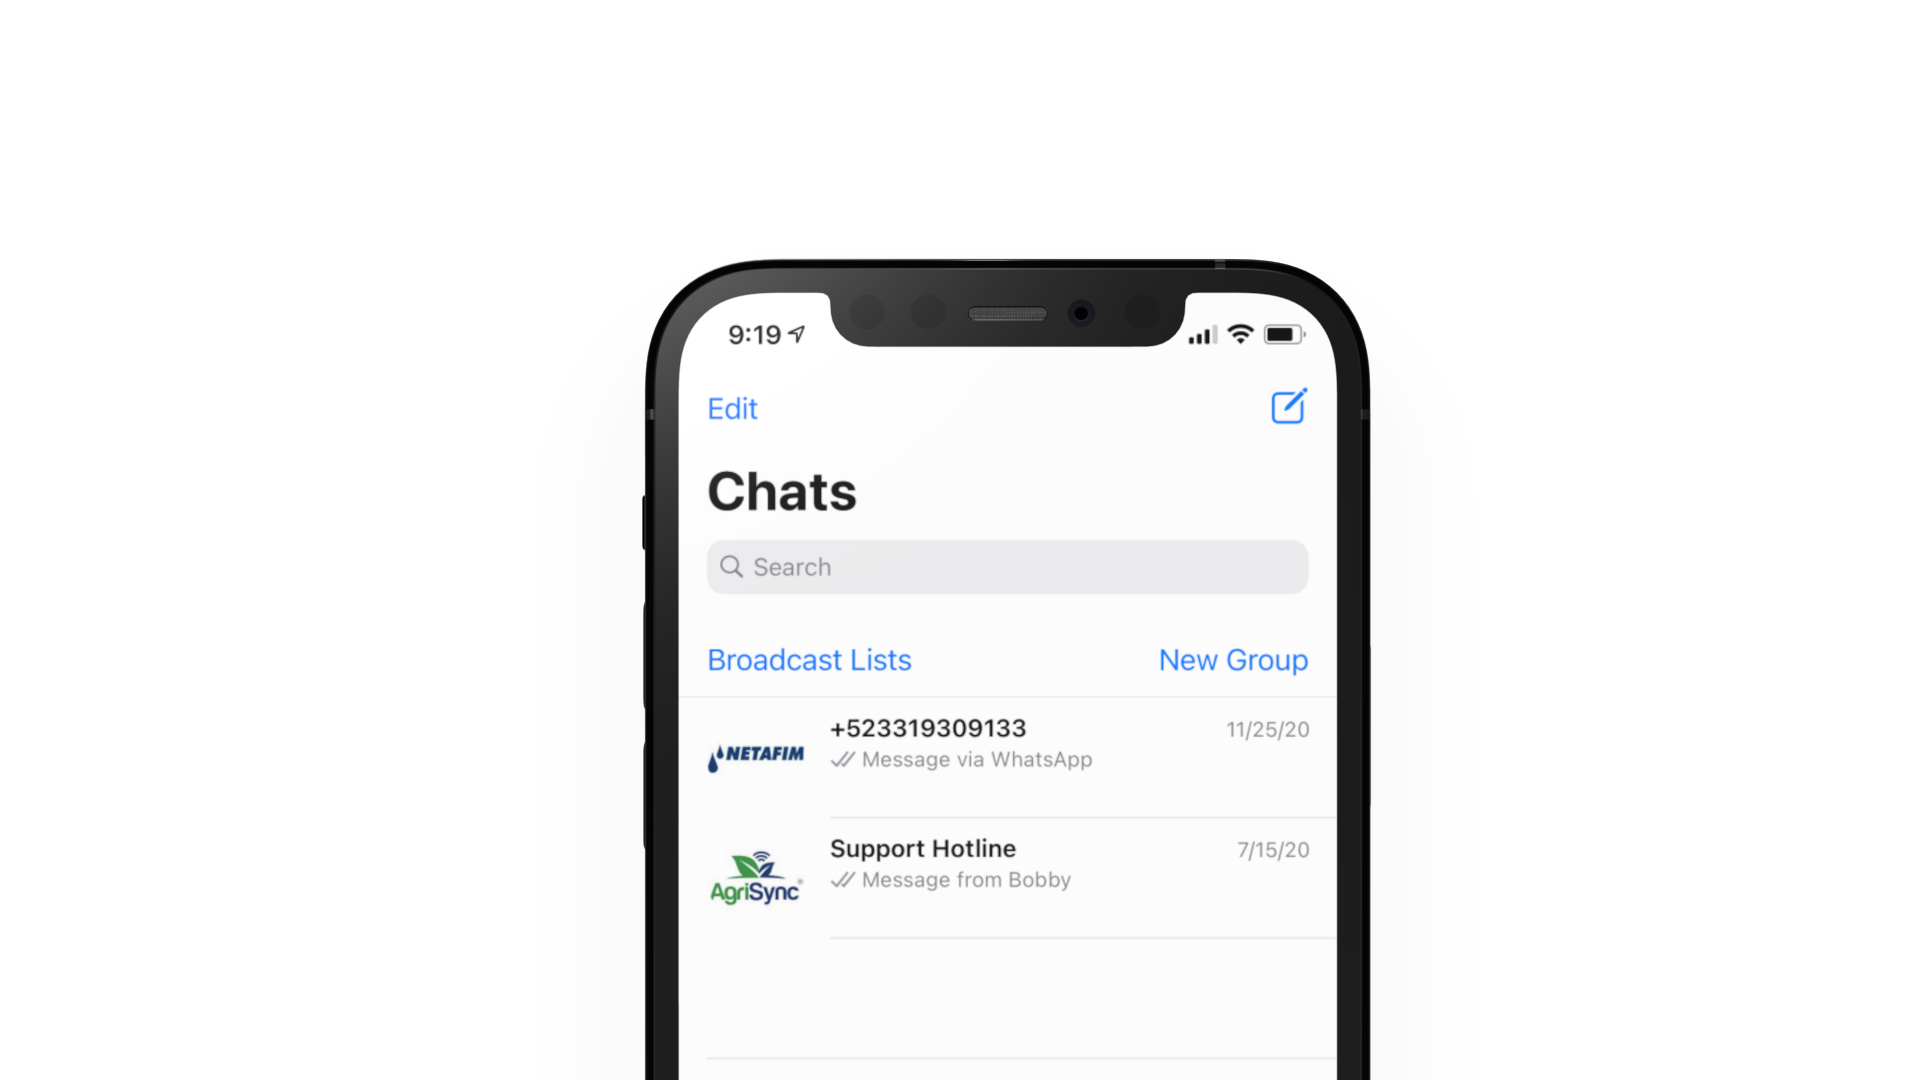 Enable Omnichannel Communication via WhatsApp Messaging